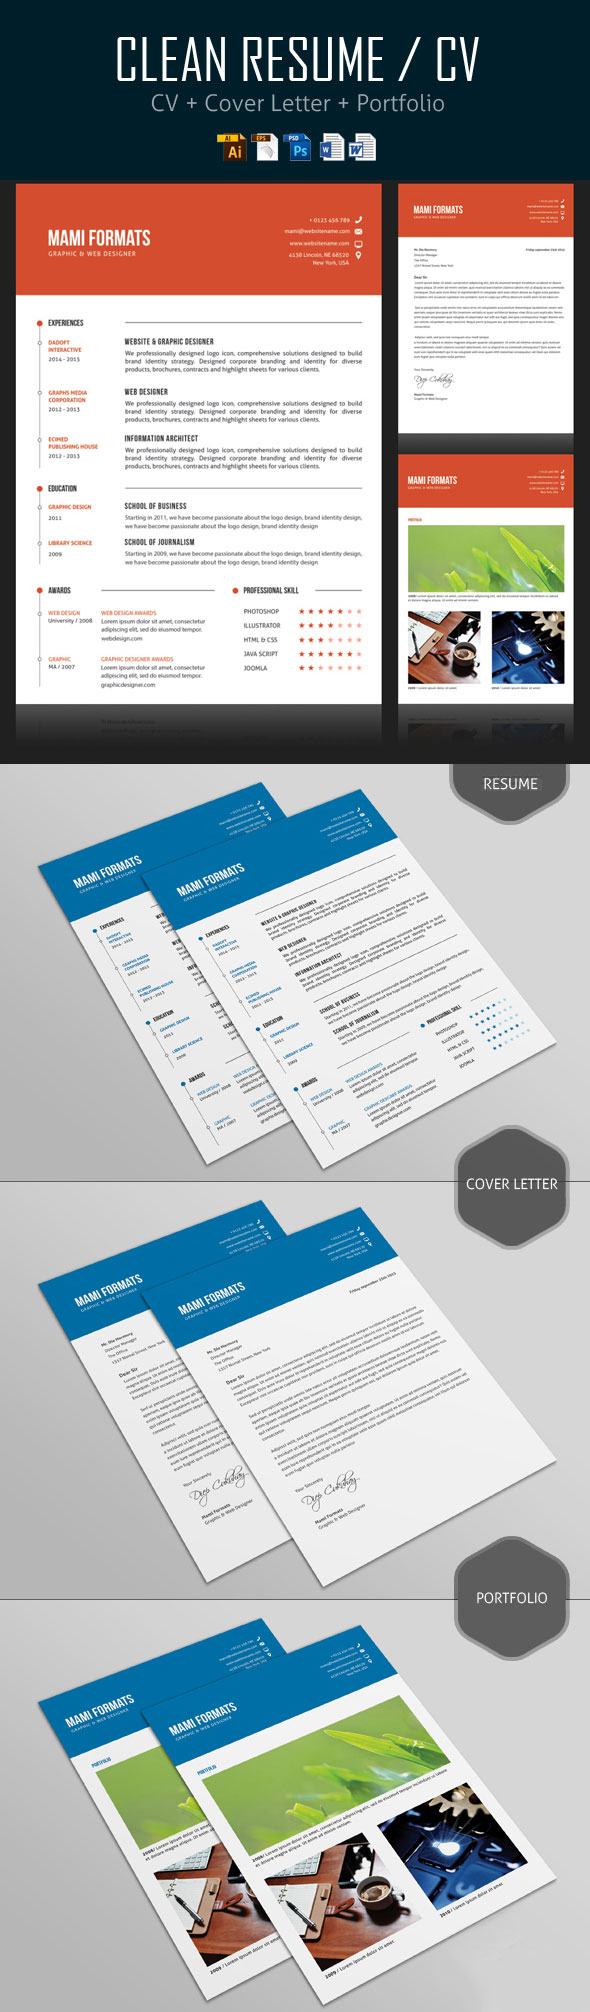 Simple CV/Resume & Cover Letter Design